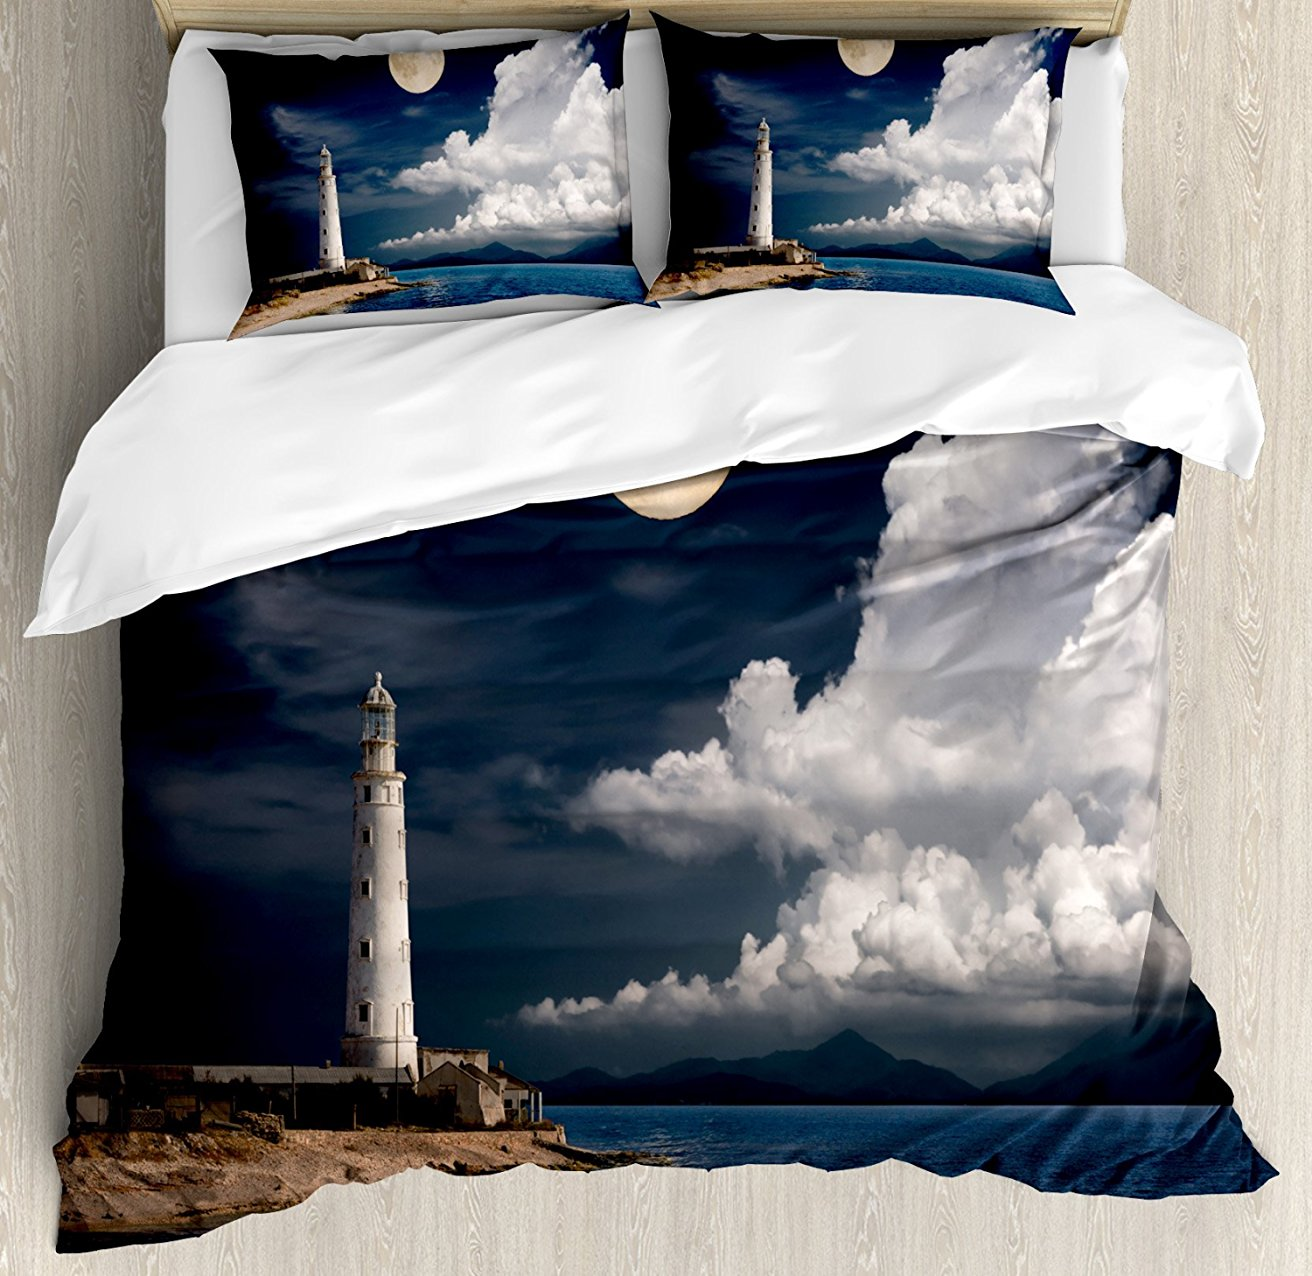 Lighthouse Duvet Cover Set Lighthouse Moonlight Island Large Clouds Sea Seaside Waterfront Night Time Bay 4 Piece Bedding Set image